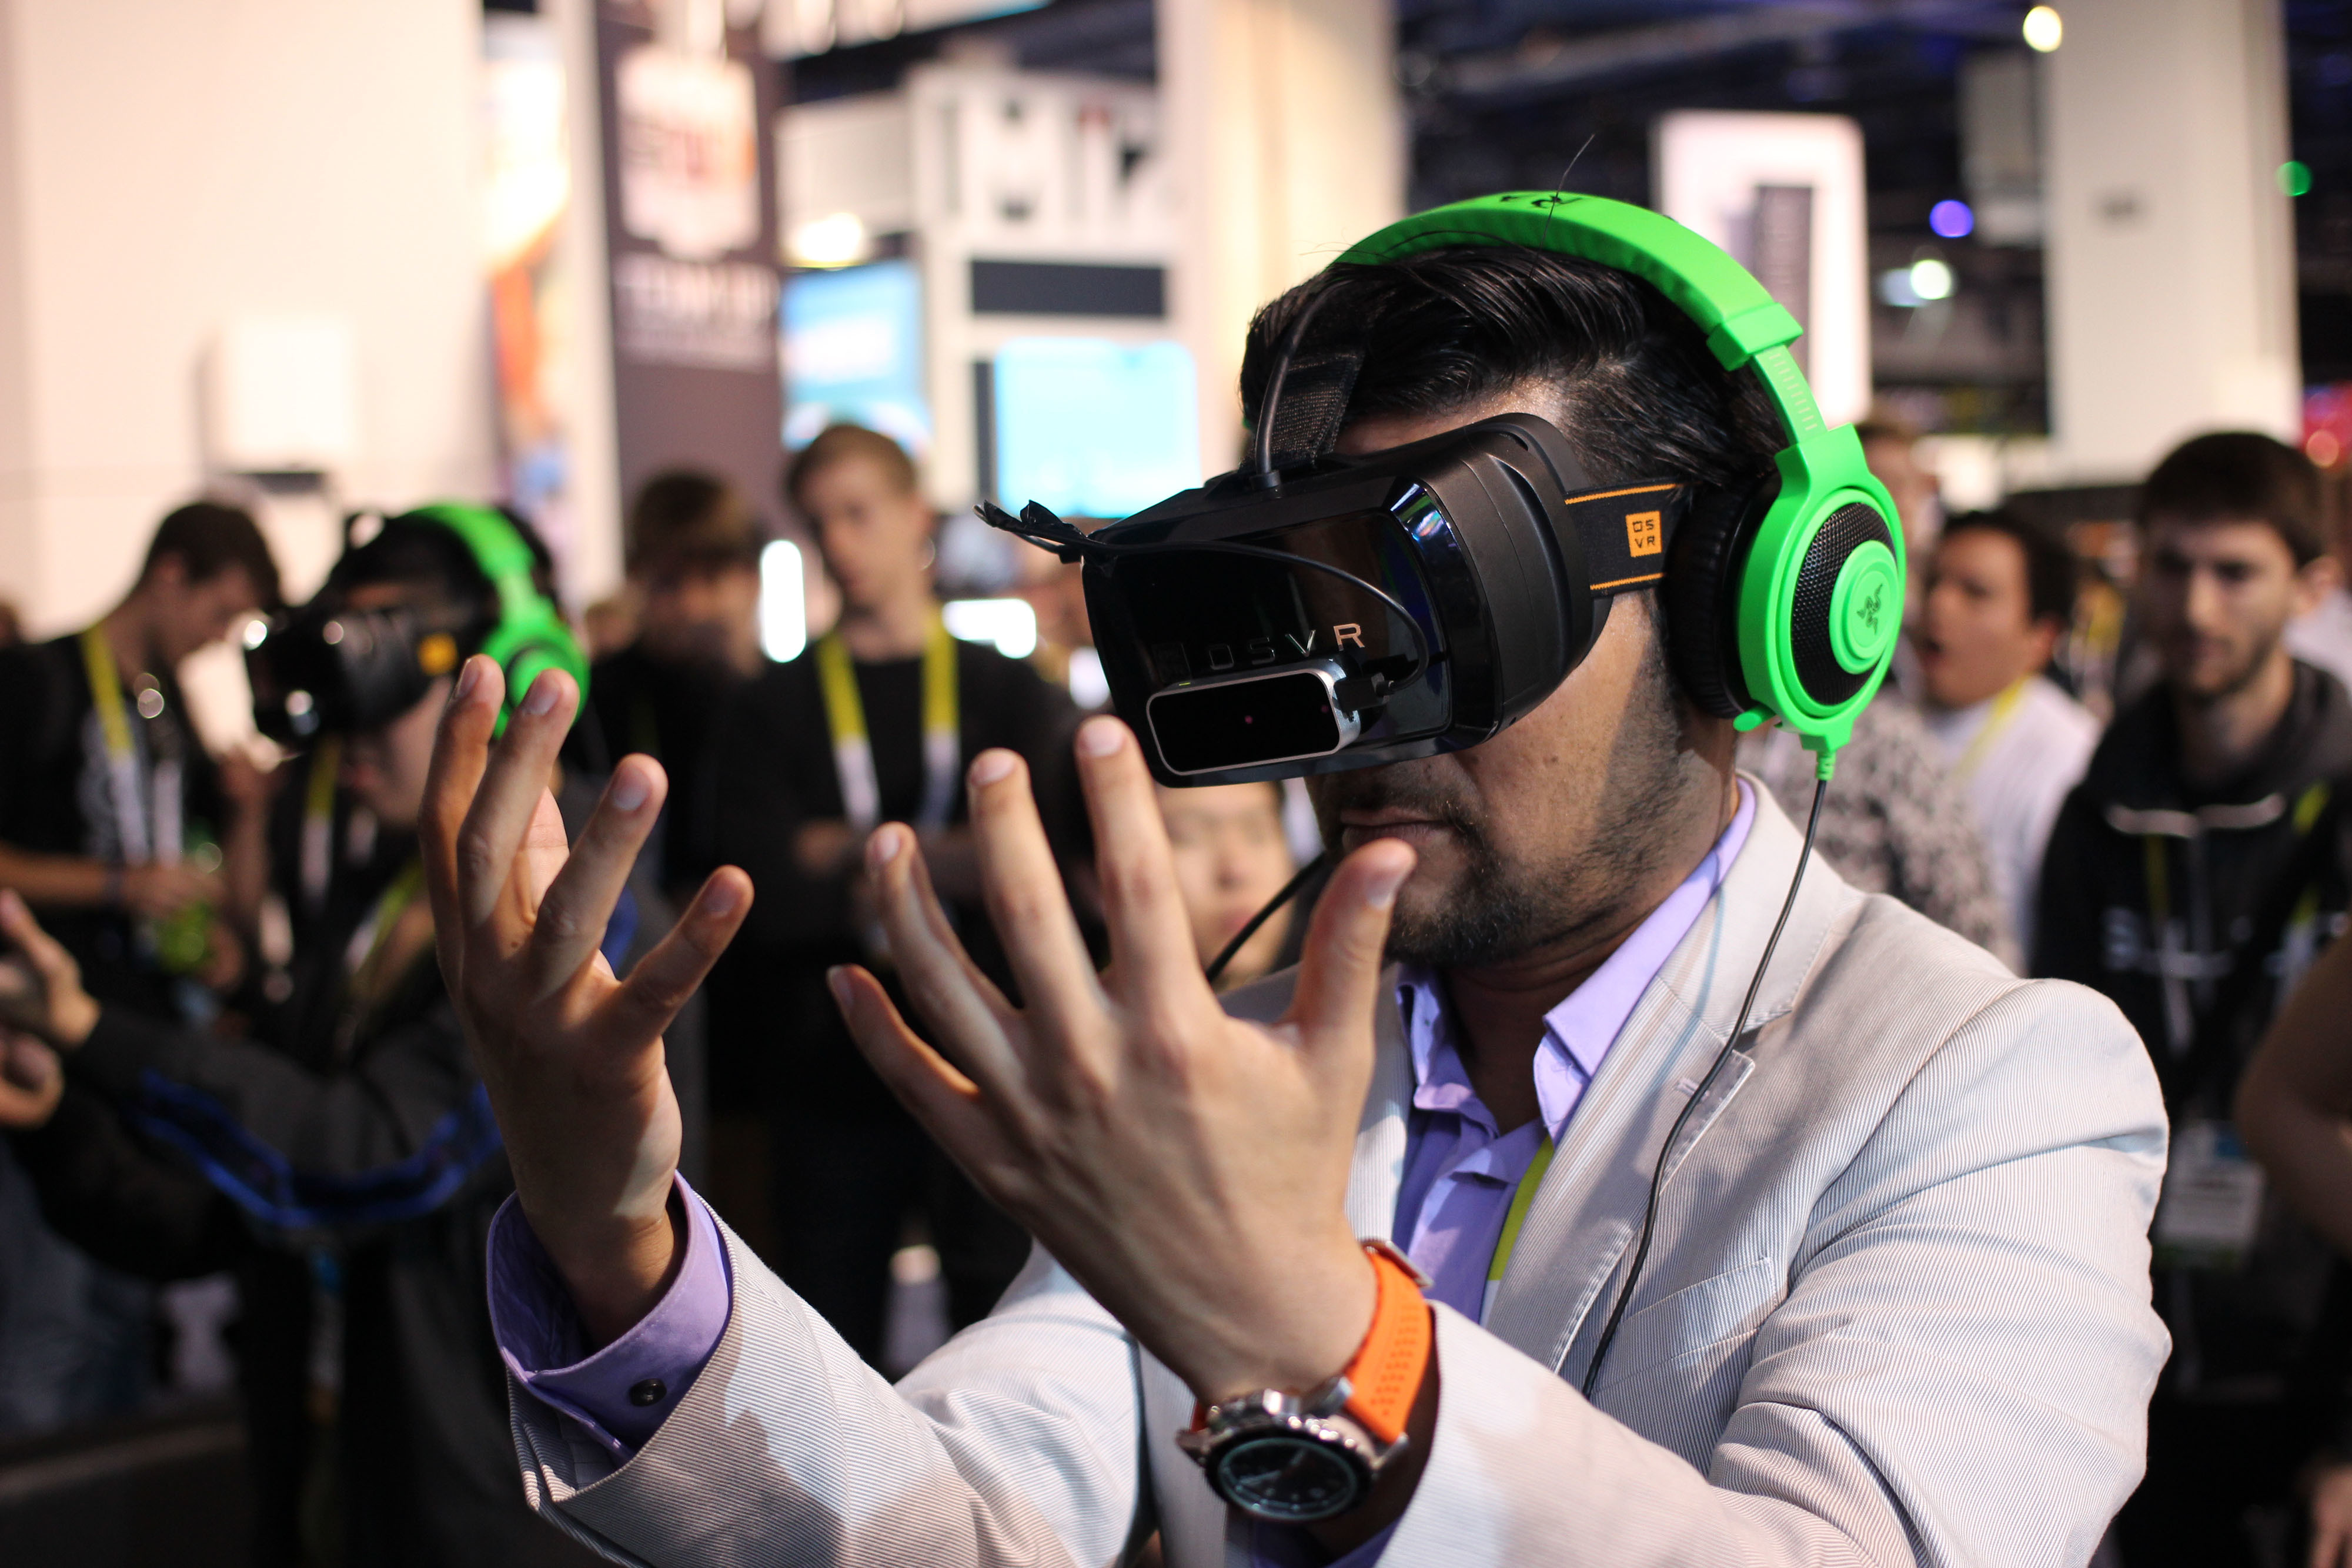 virtual reality advanced technology that allows you to experience a different reality